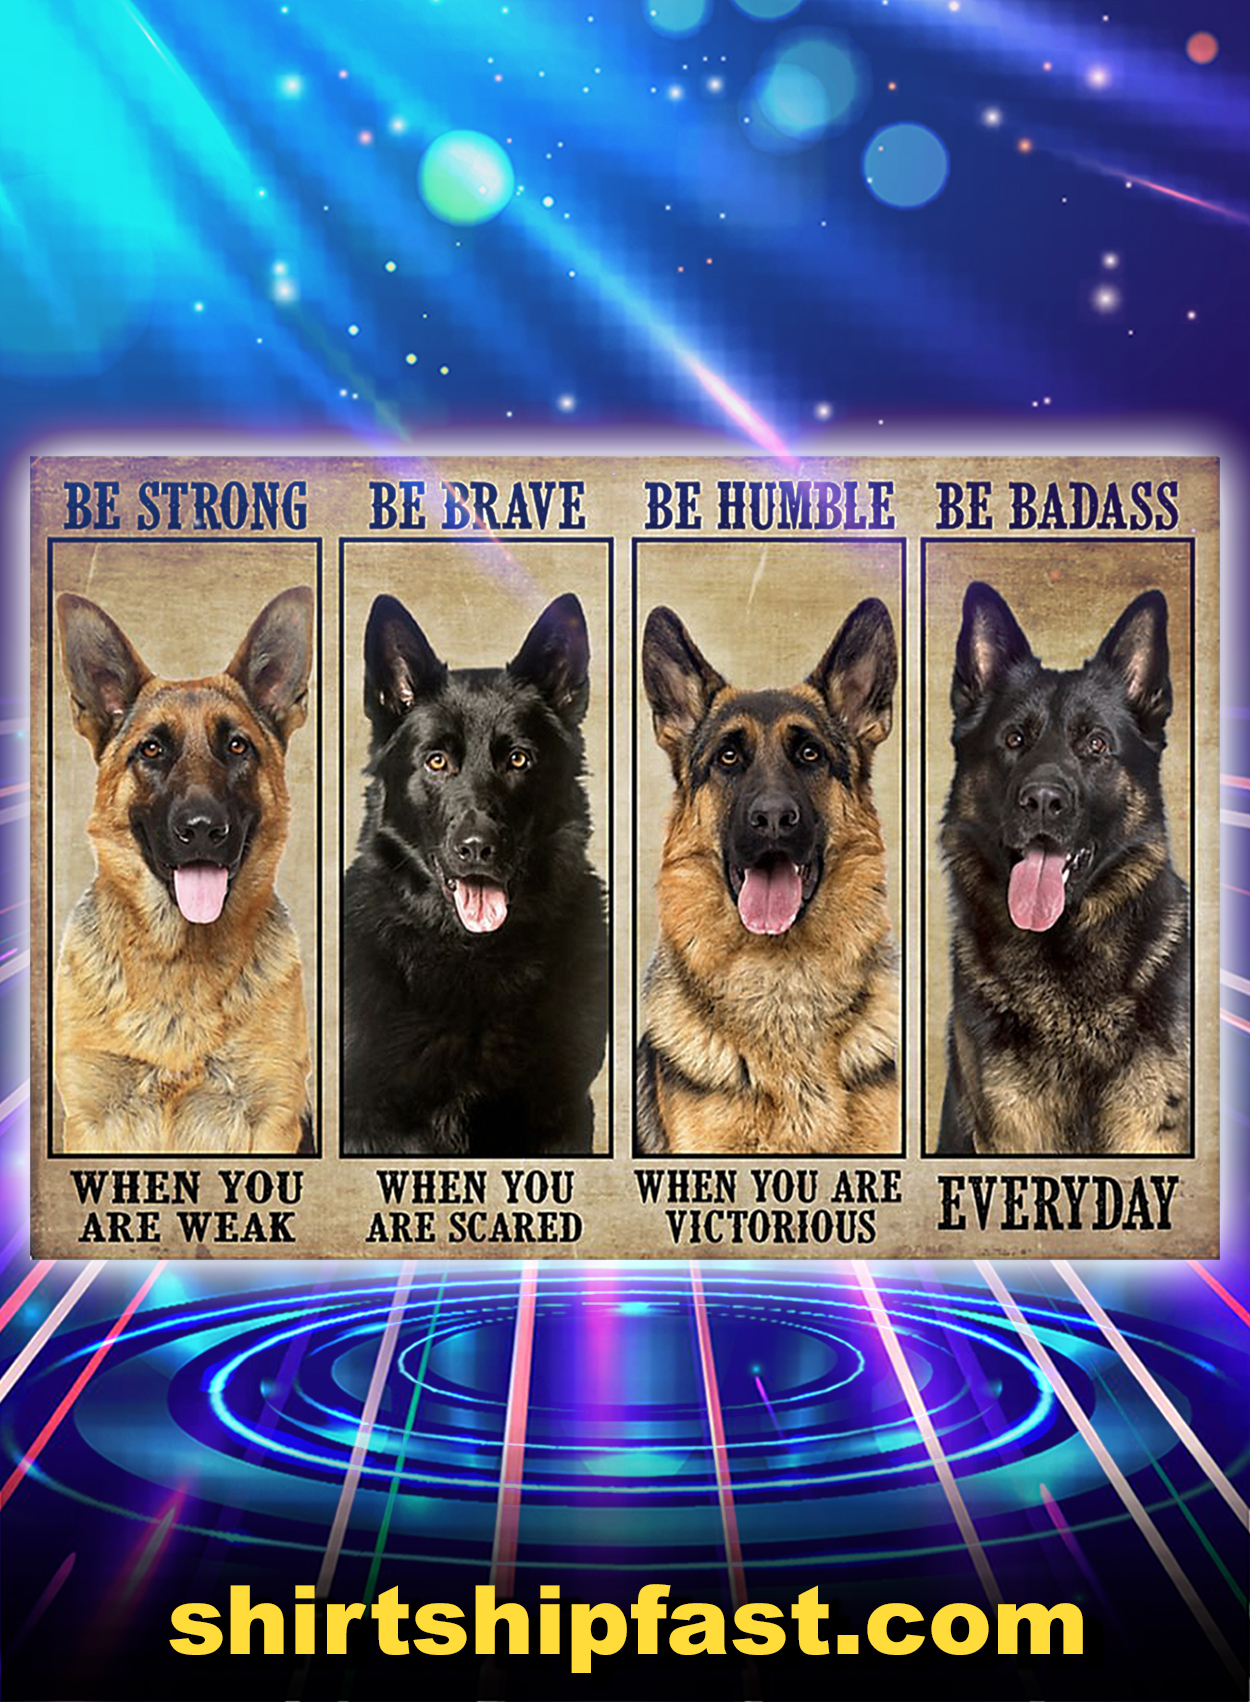 German Sherpherd be strong be brave be humble be badass poster - A3